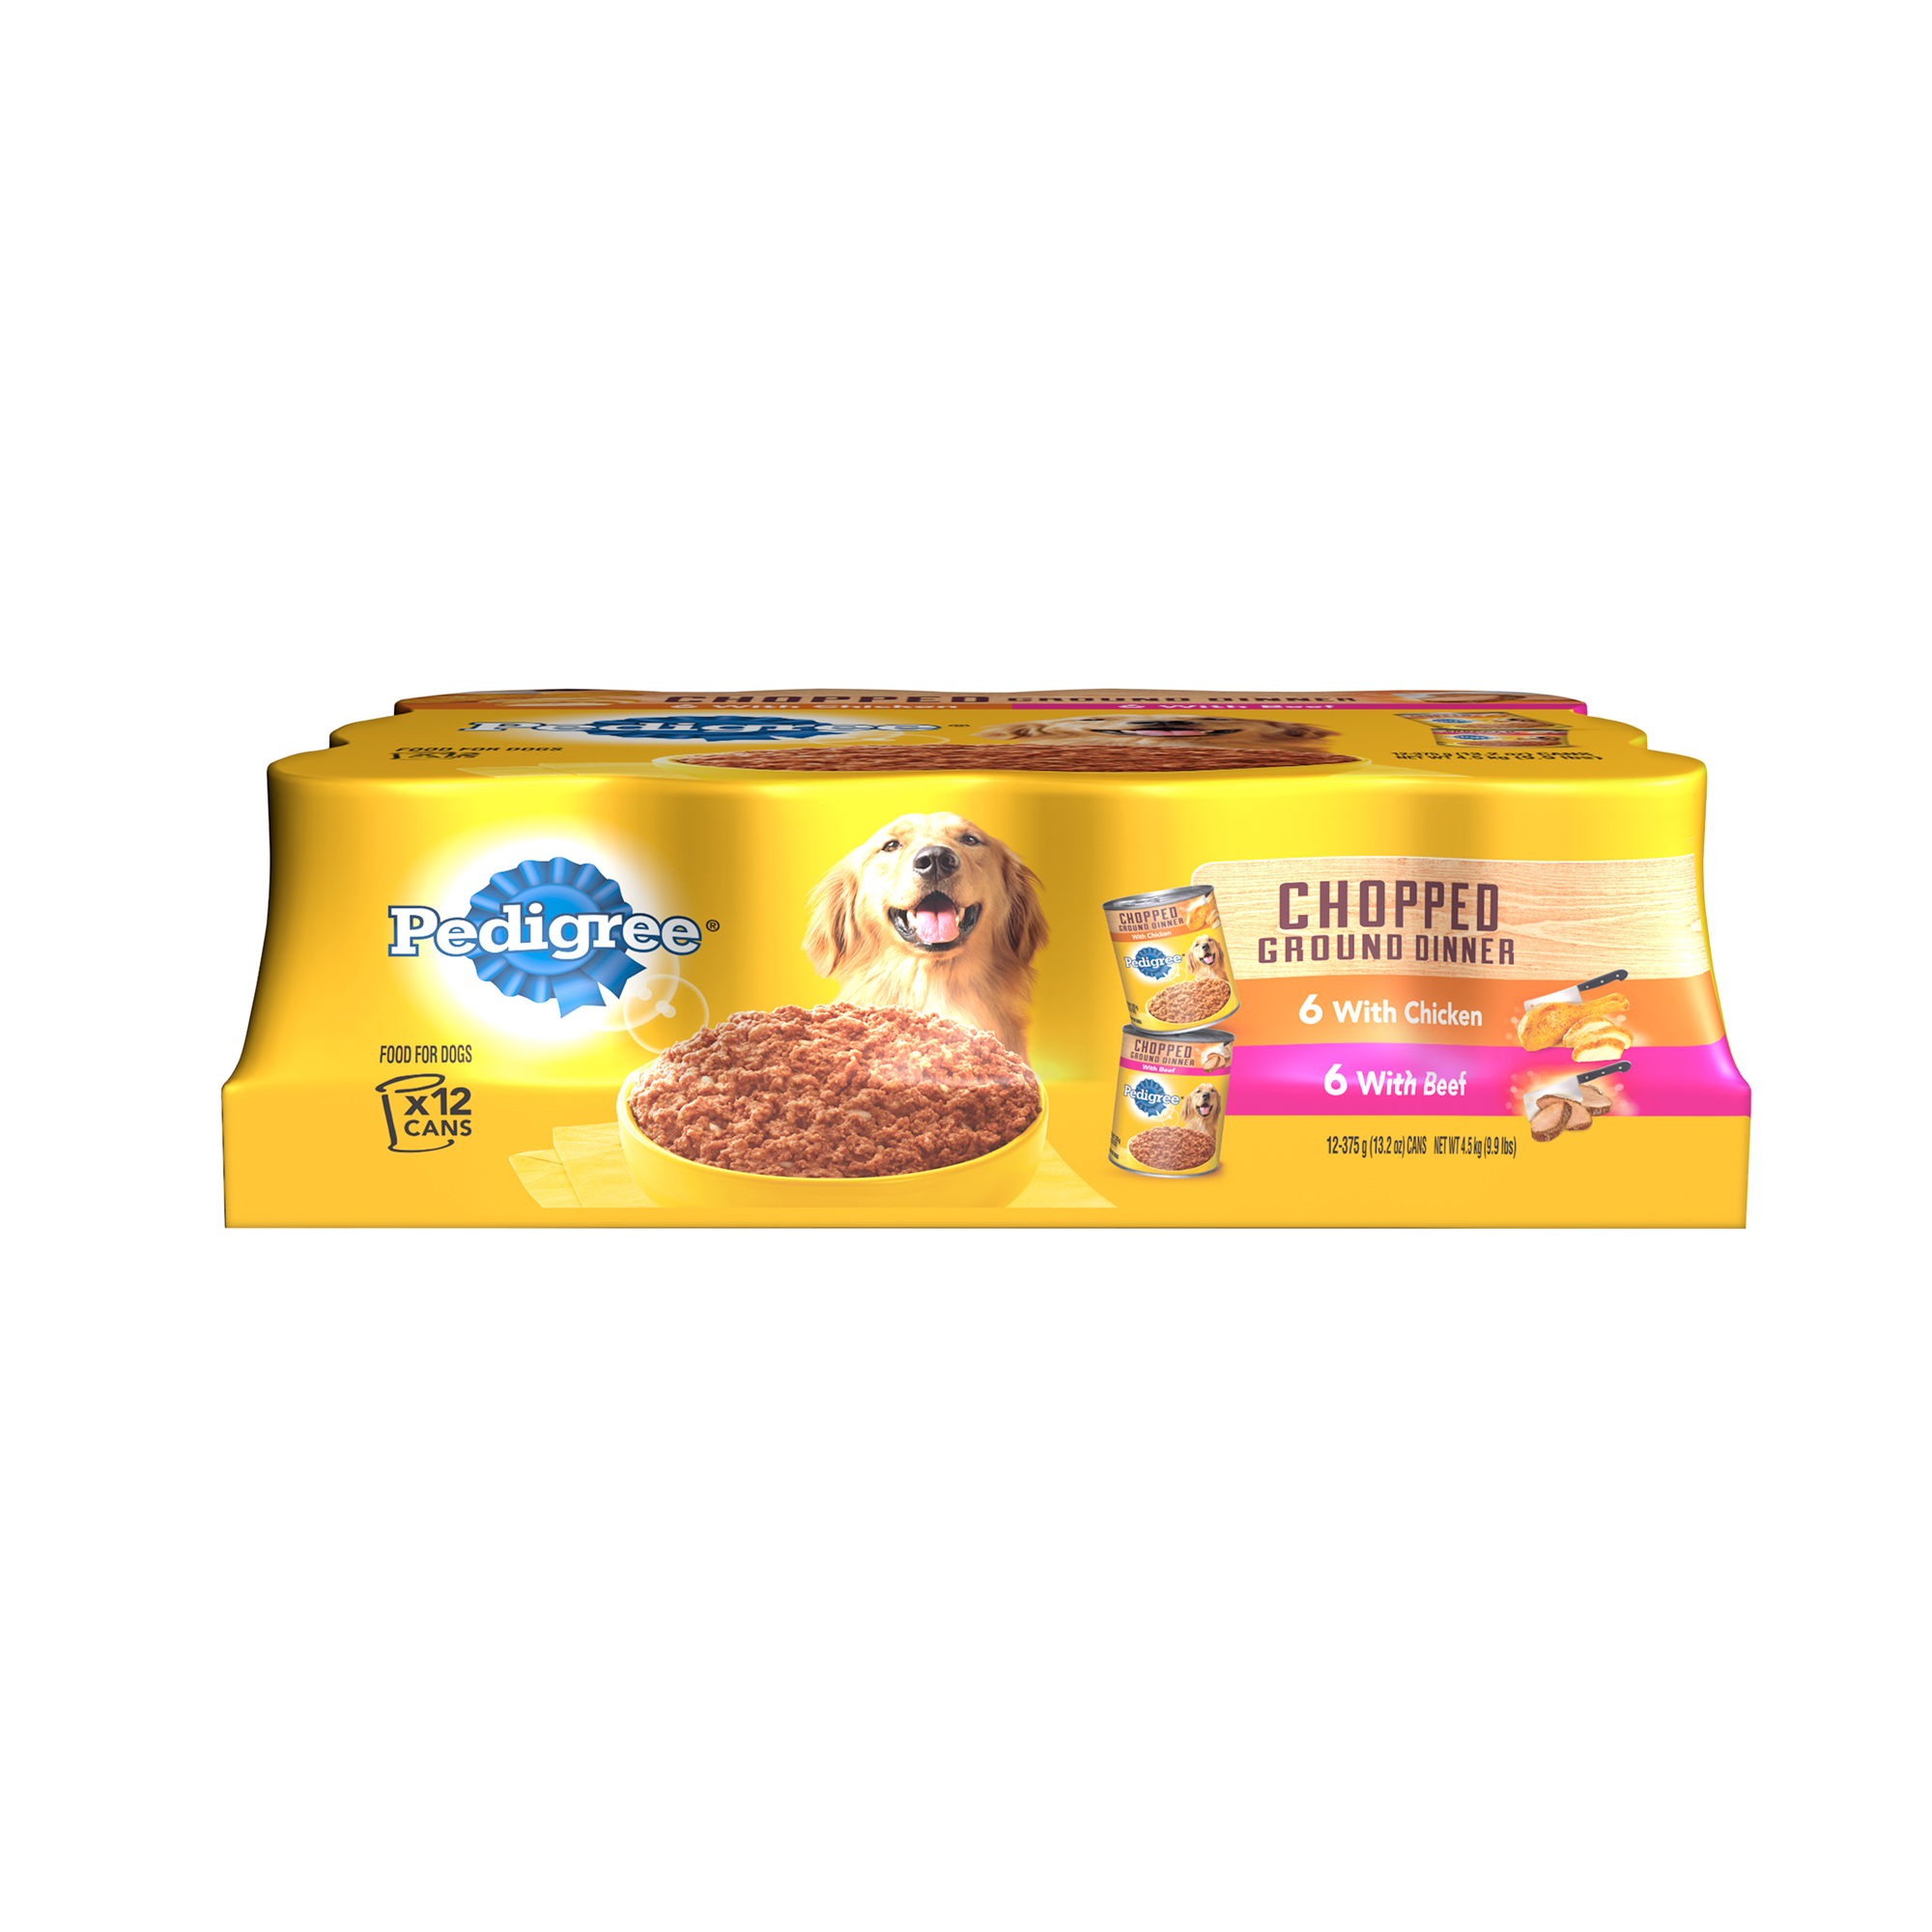 PEDIGREE Meaty Ground Dinner Multipack Chicken and Beef Dog Food 13.2 Ounces (12 Count)